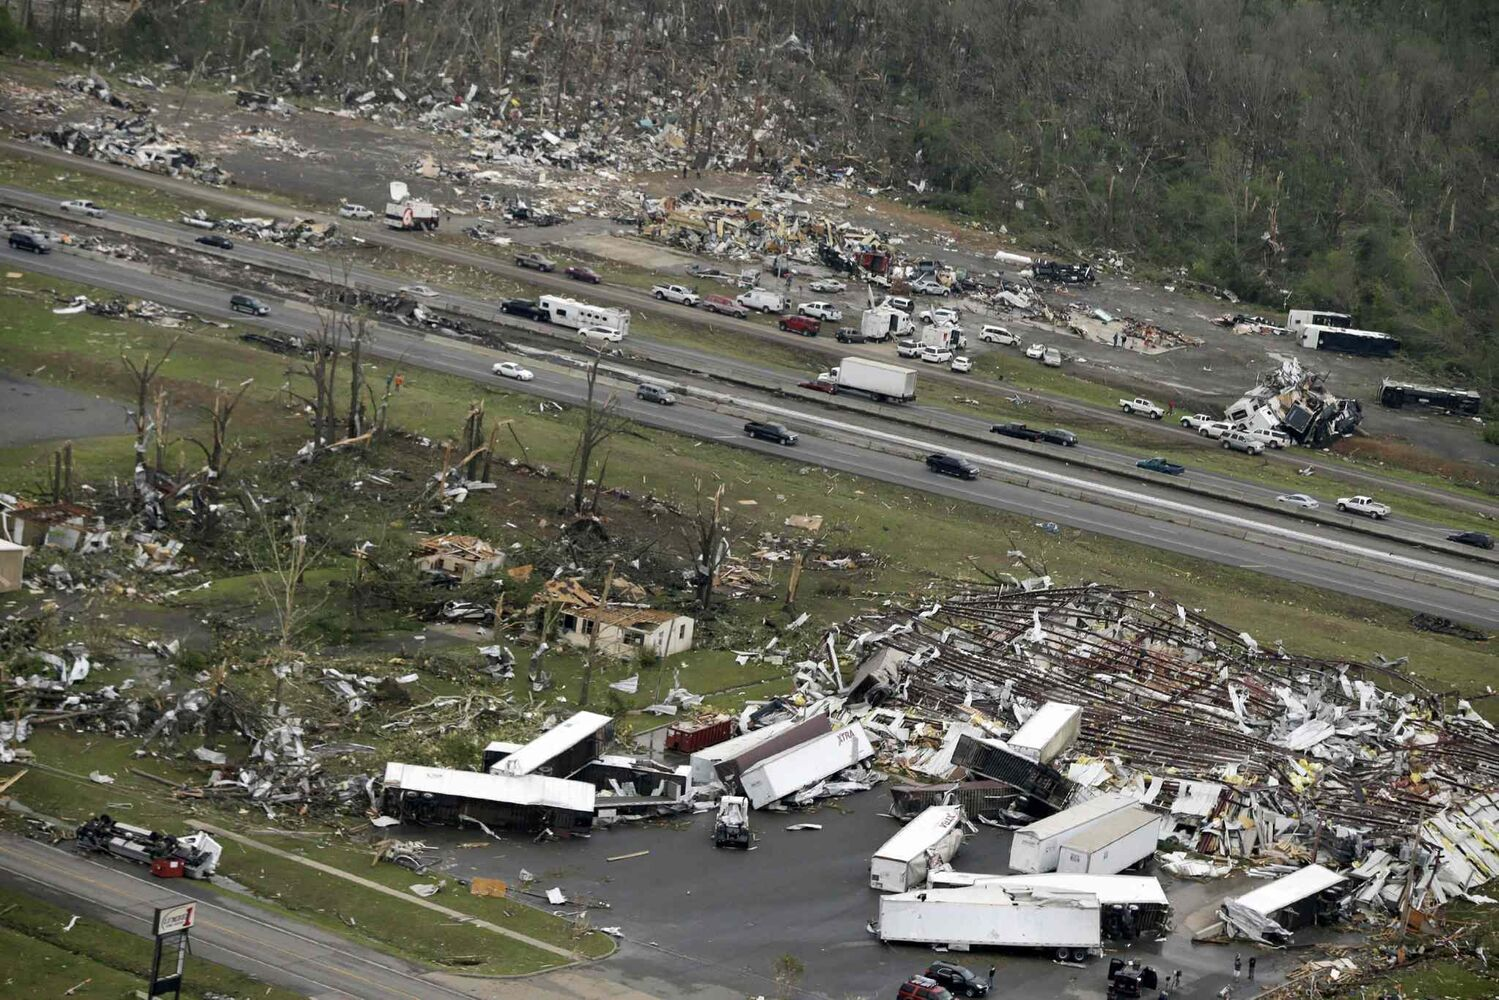 Traffic passes on Interstate 40 between destroyed businesses in Mayflower, Ark., Monday, April 28, 2014. (Danny Johnston / The Associated Press)